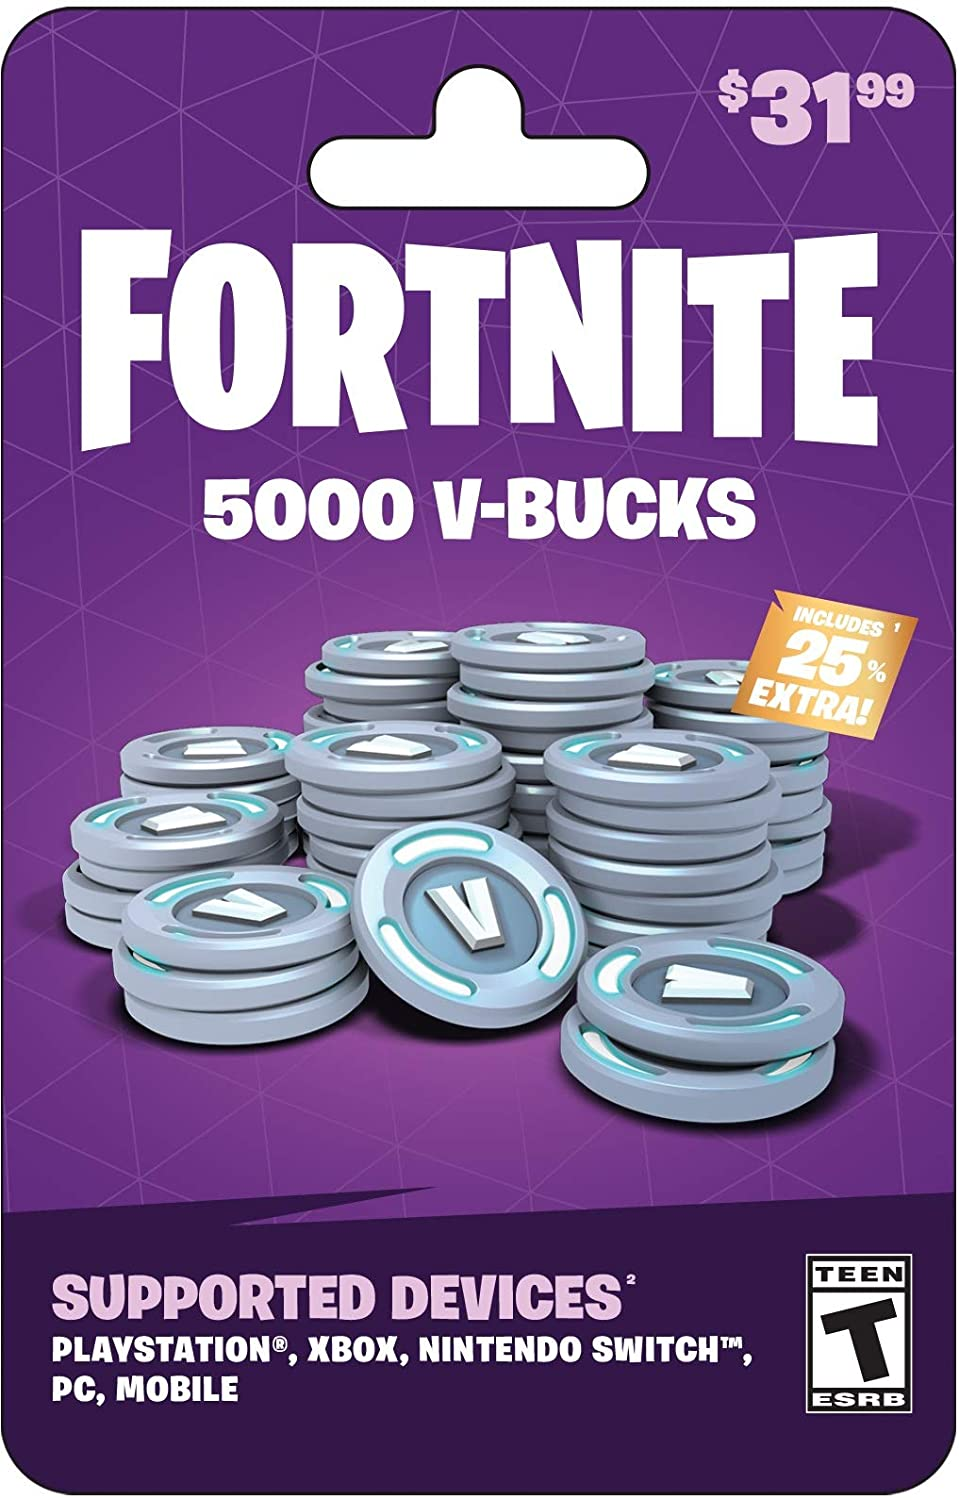 What Kind Of Audio Does Fortnite Support Amazon Com Fornite V Bucks Gift Card 31 99 Gift Cards